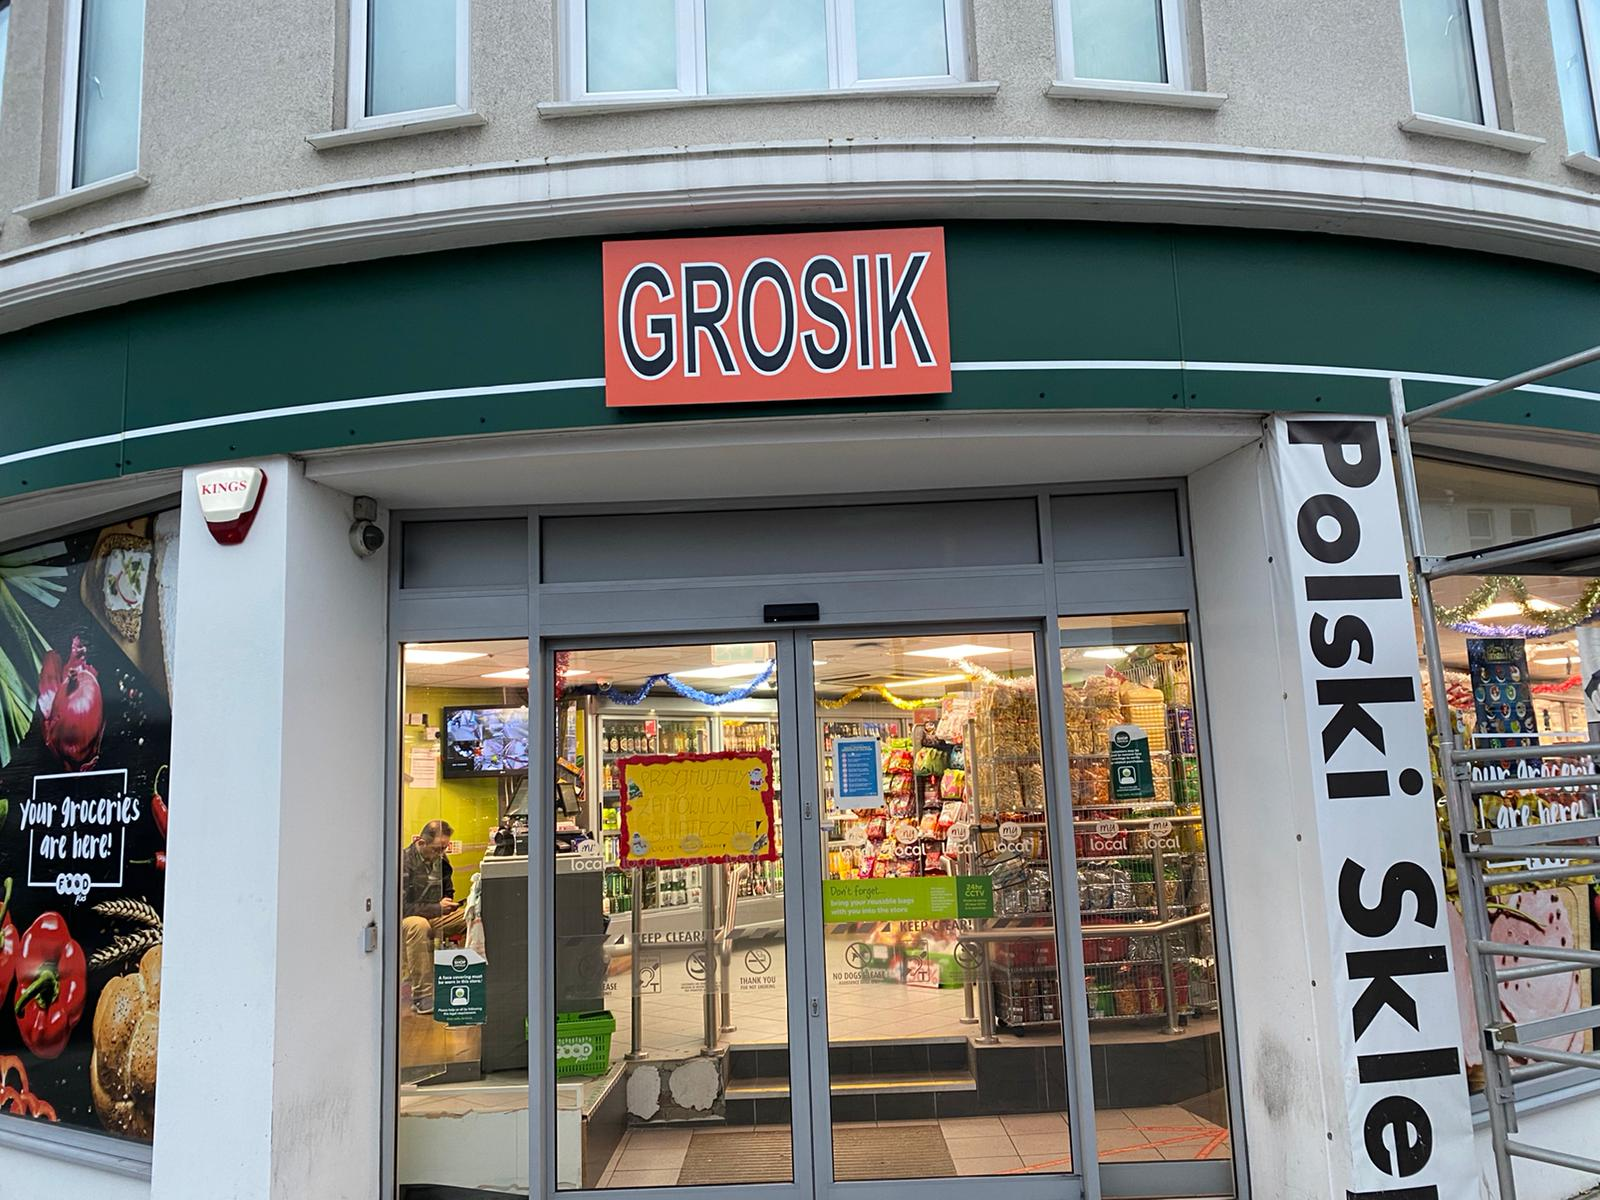 Grosik Shop sign